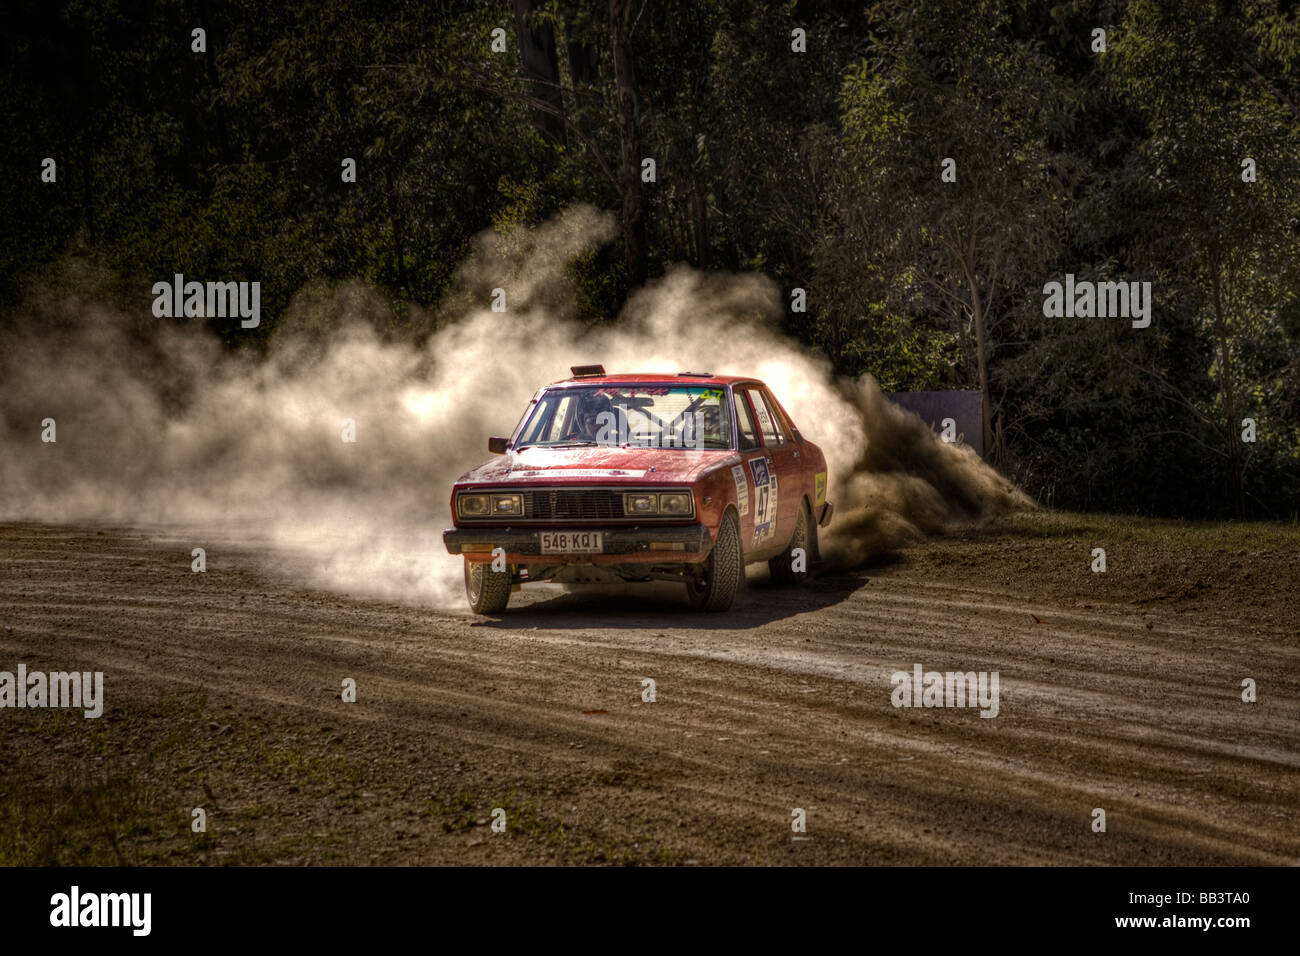 rally driving Stock Photo: 24056536 - Alamy